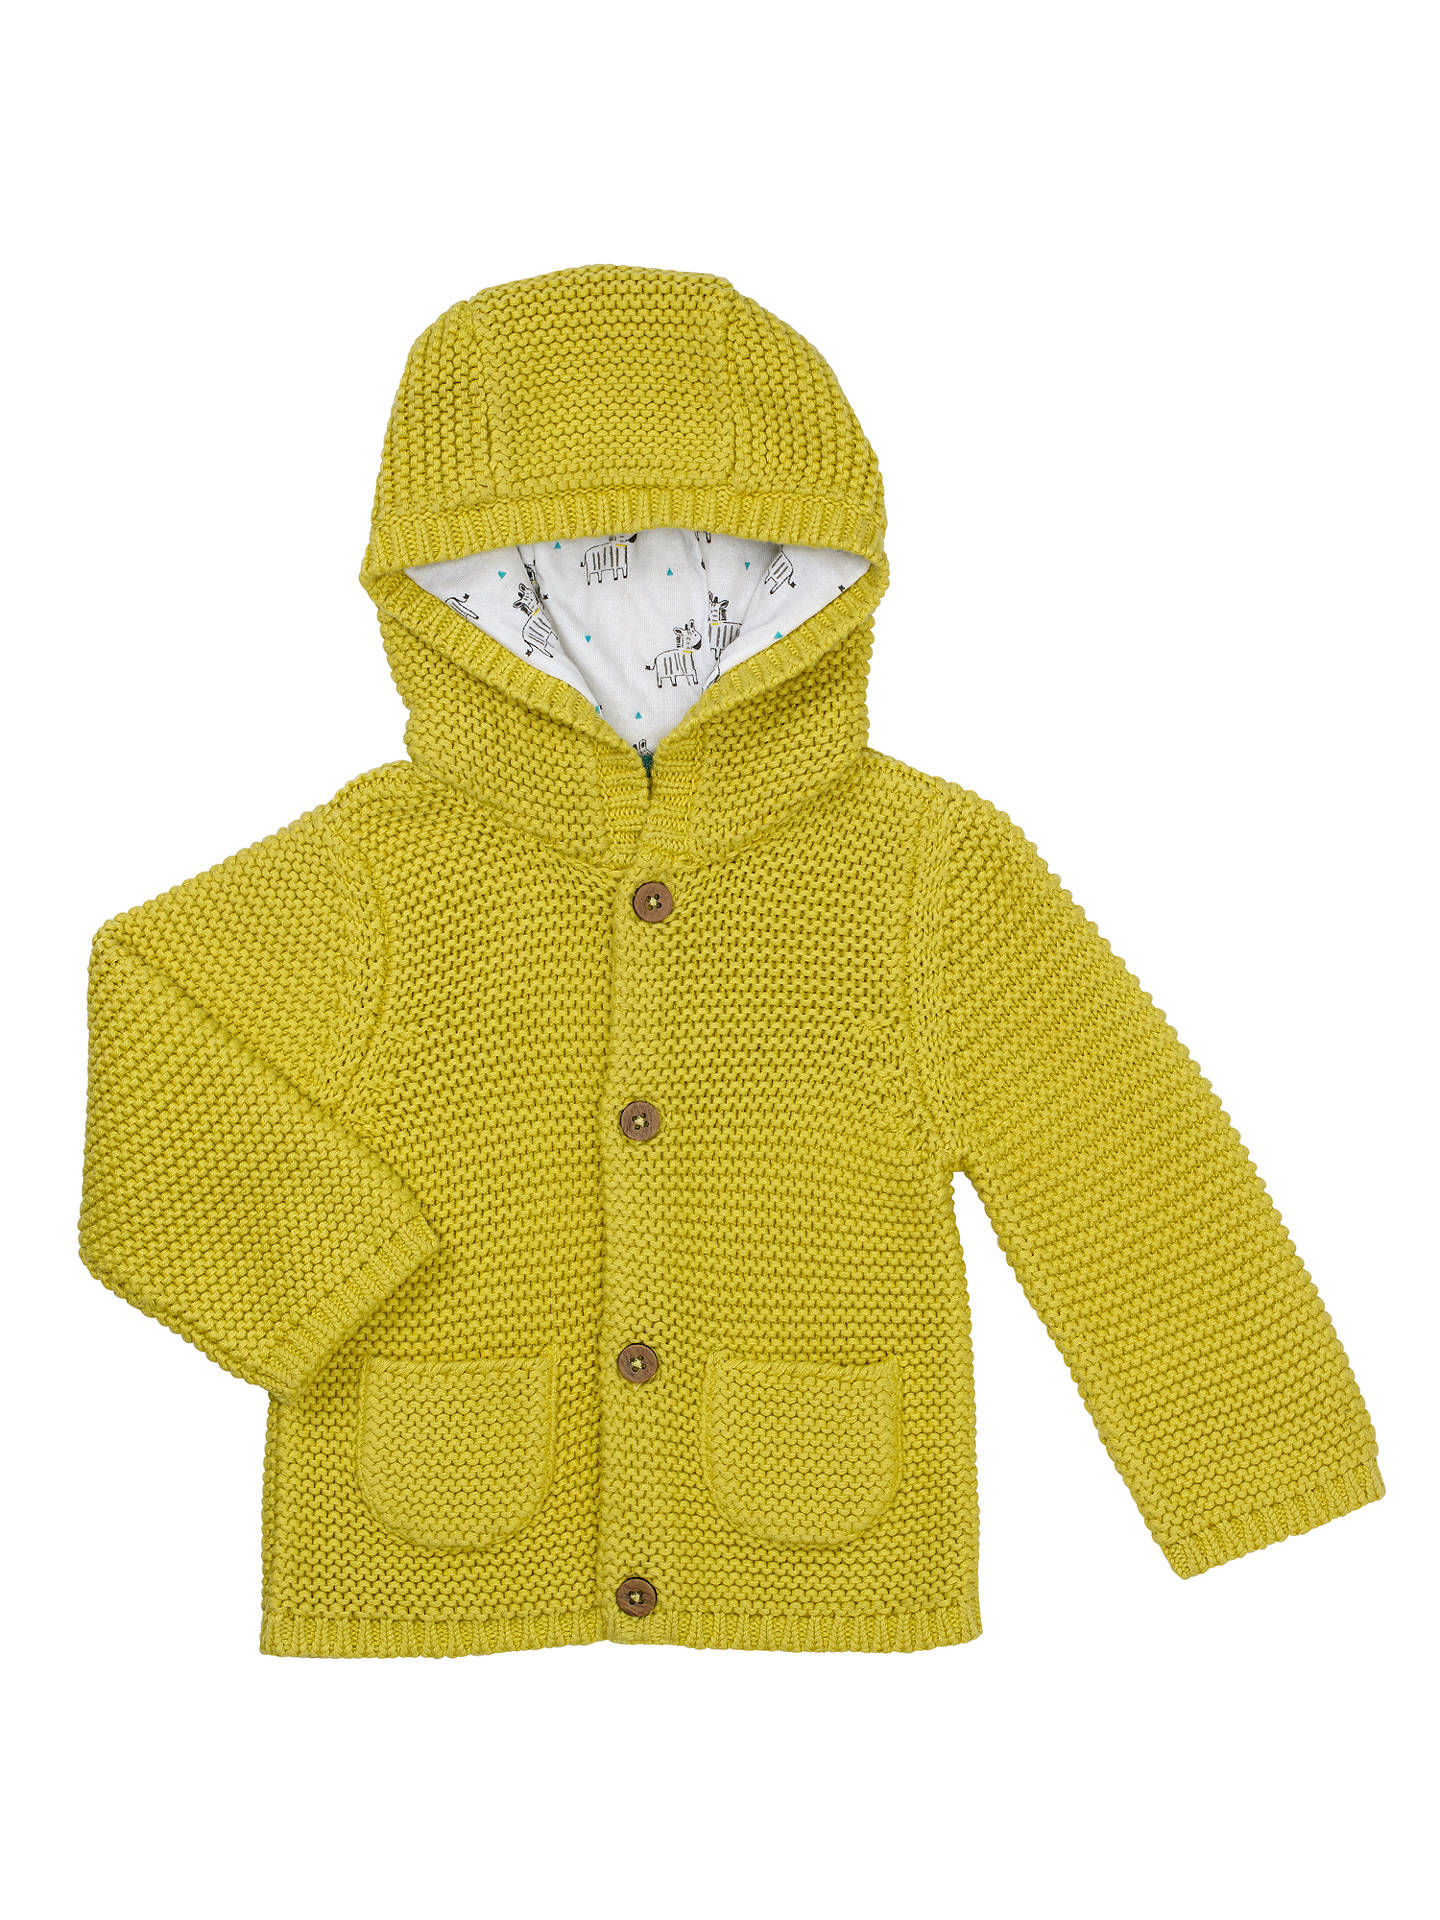 4aae4a4bbc0a John Lewis Baby Hooded Cardigan